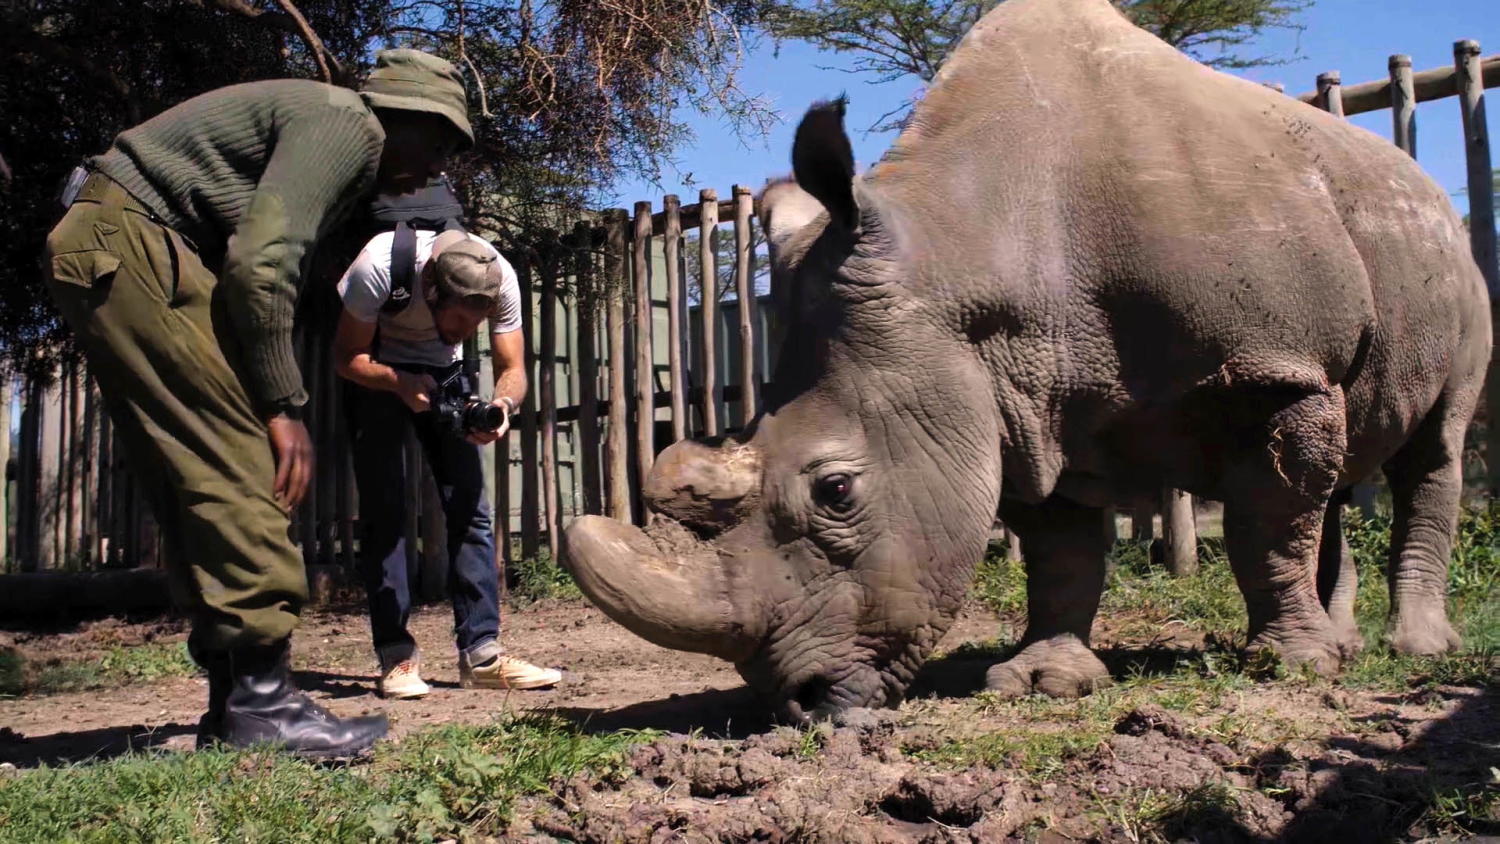 A videographer and an animal caretaker stand next to a rhino